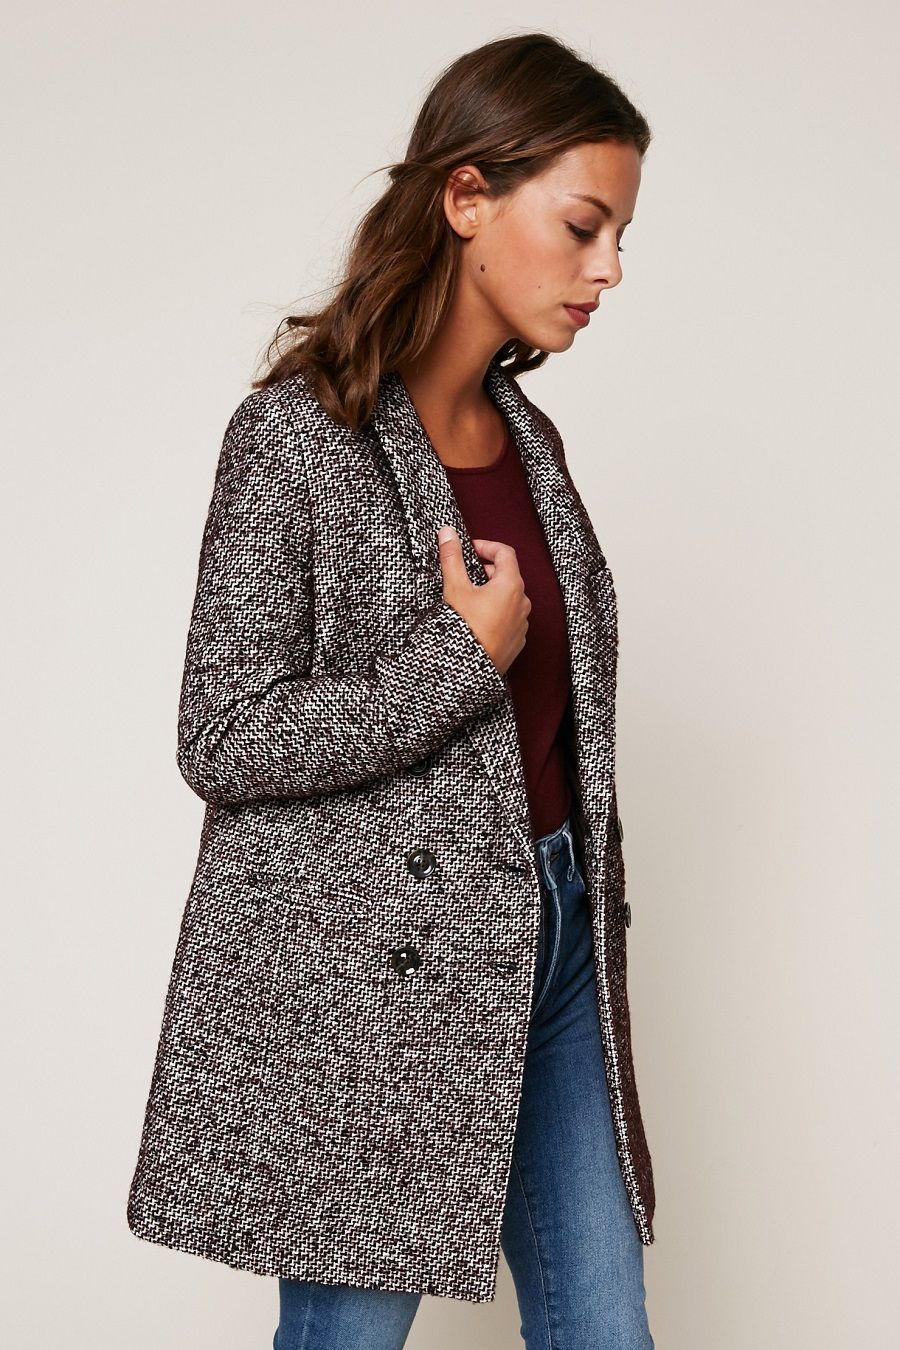 ikks women manteau mi long tweed blanc et bordeaux ikks pinterest tweed mi long et bordeaux. Black Bedroom Furniture Sets. Home Design Ideas